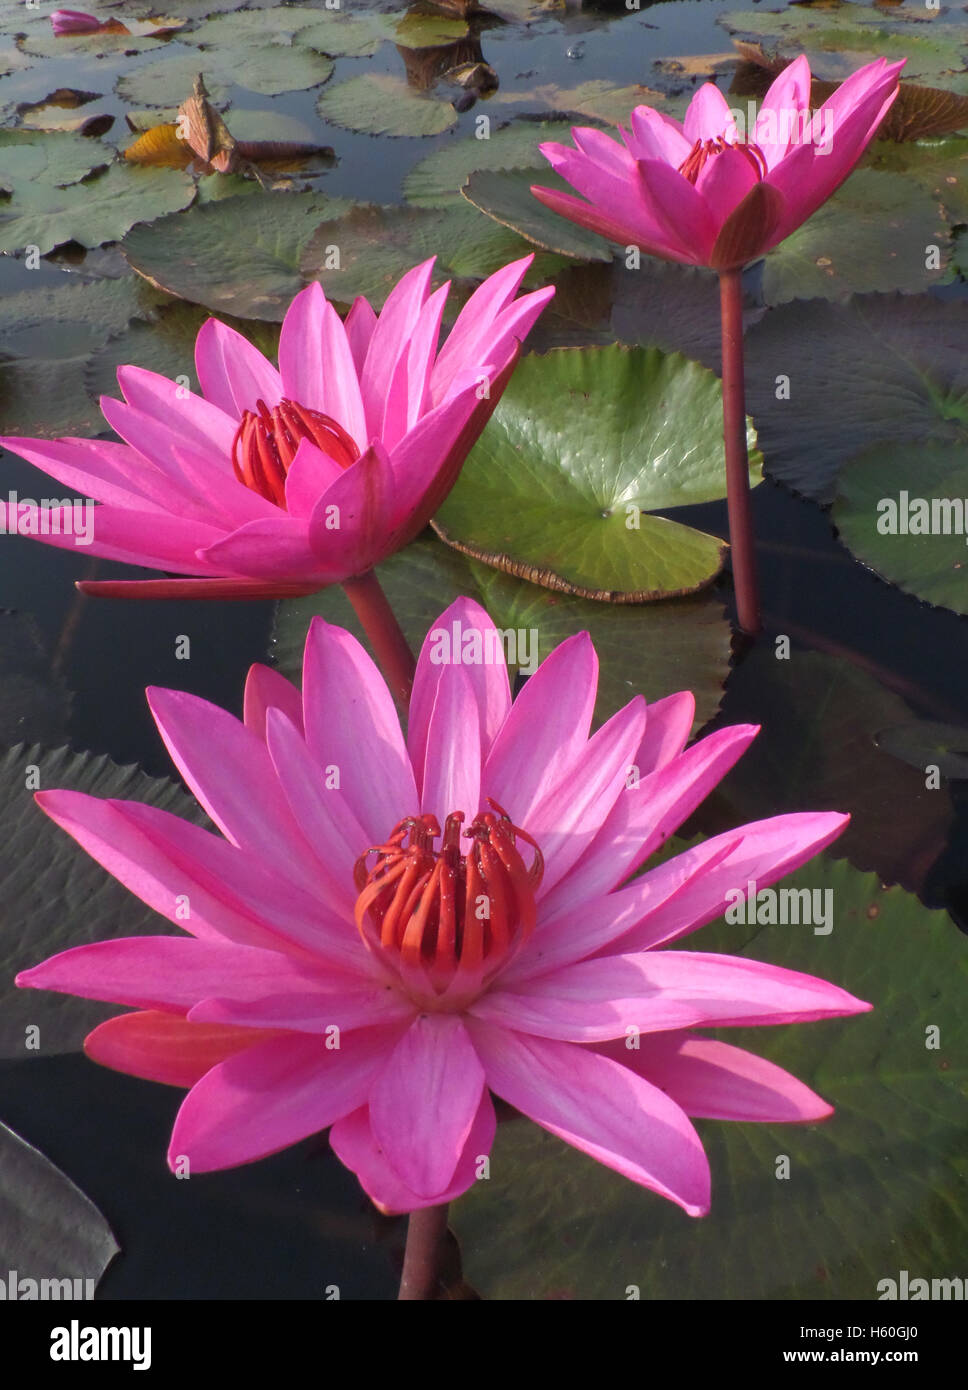 Pink lotus flowers stock photos pink lotus flowers stock images three blooming vivid pink lotus flowers in a lake vertical picture stock image izmirmasajfo